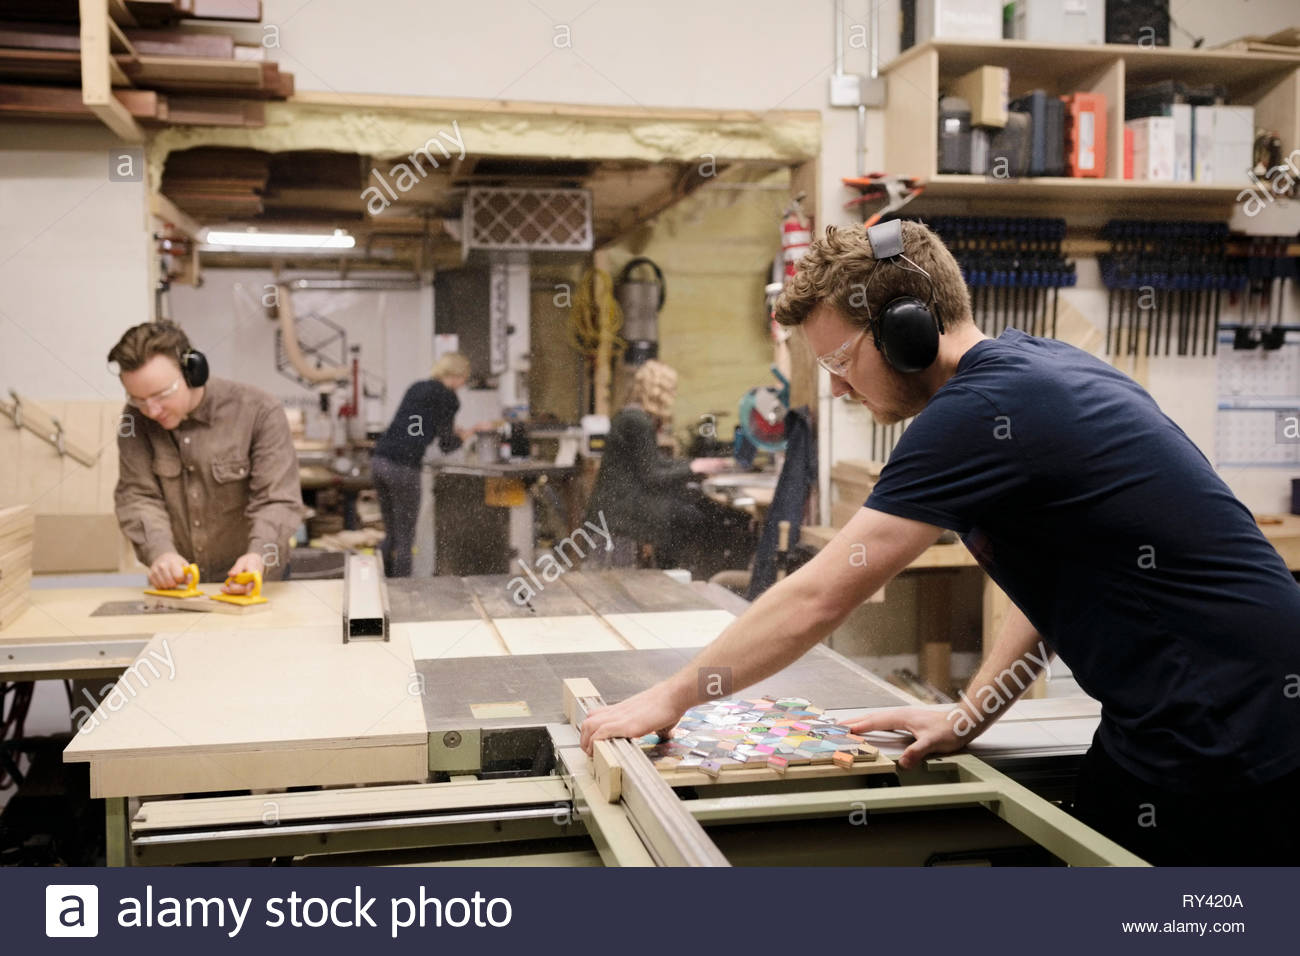 Artists woodworking in workshop - Stock Image